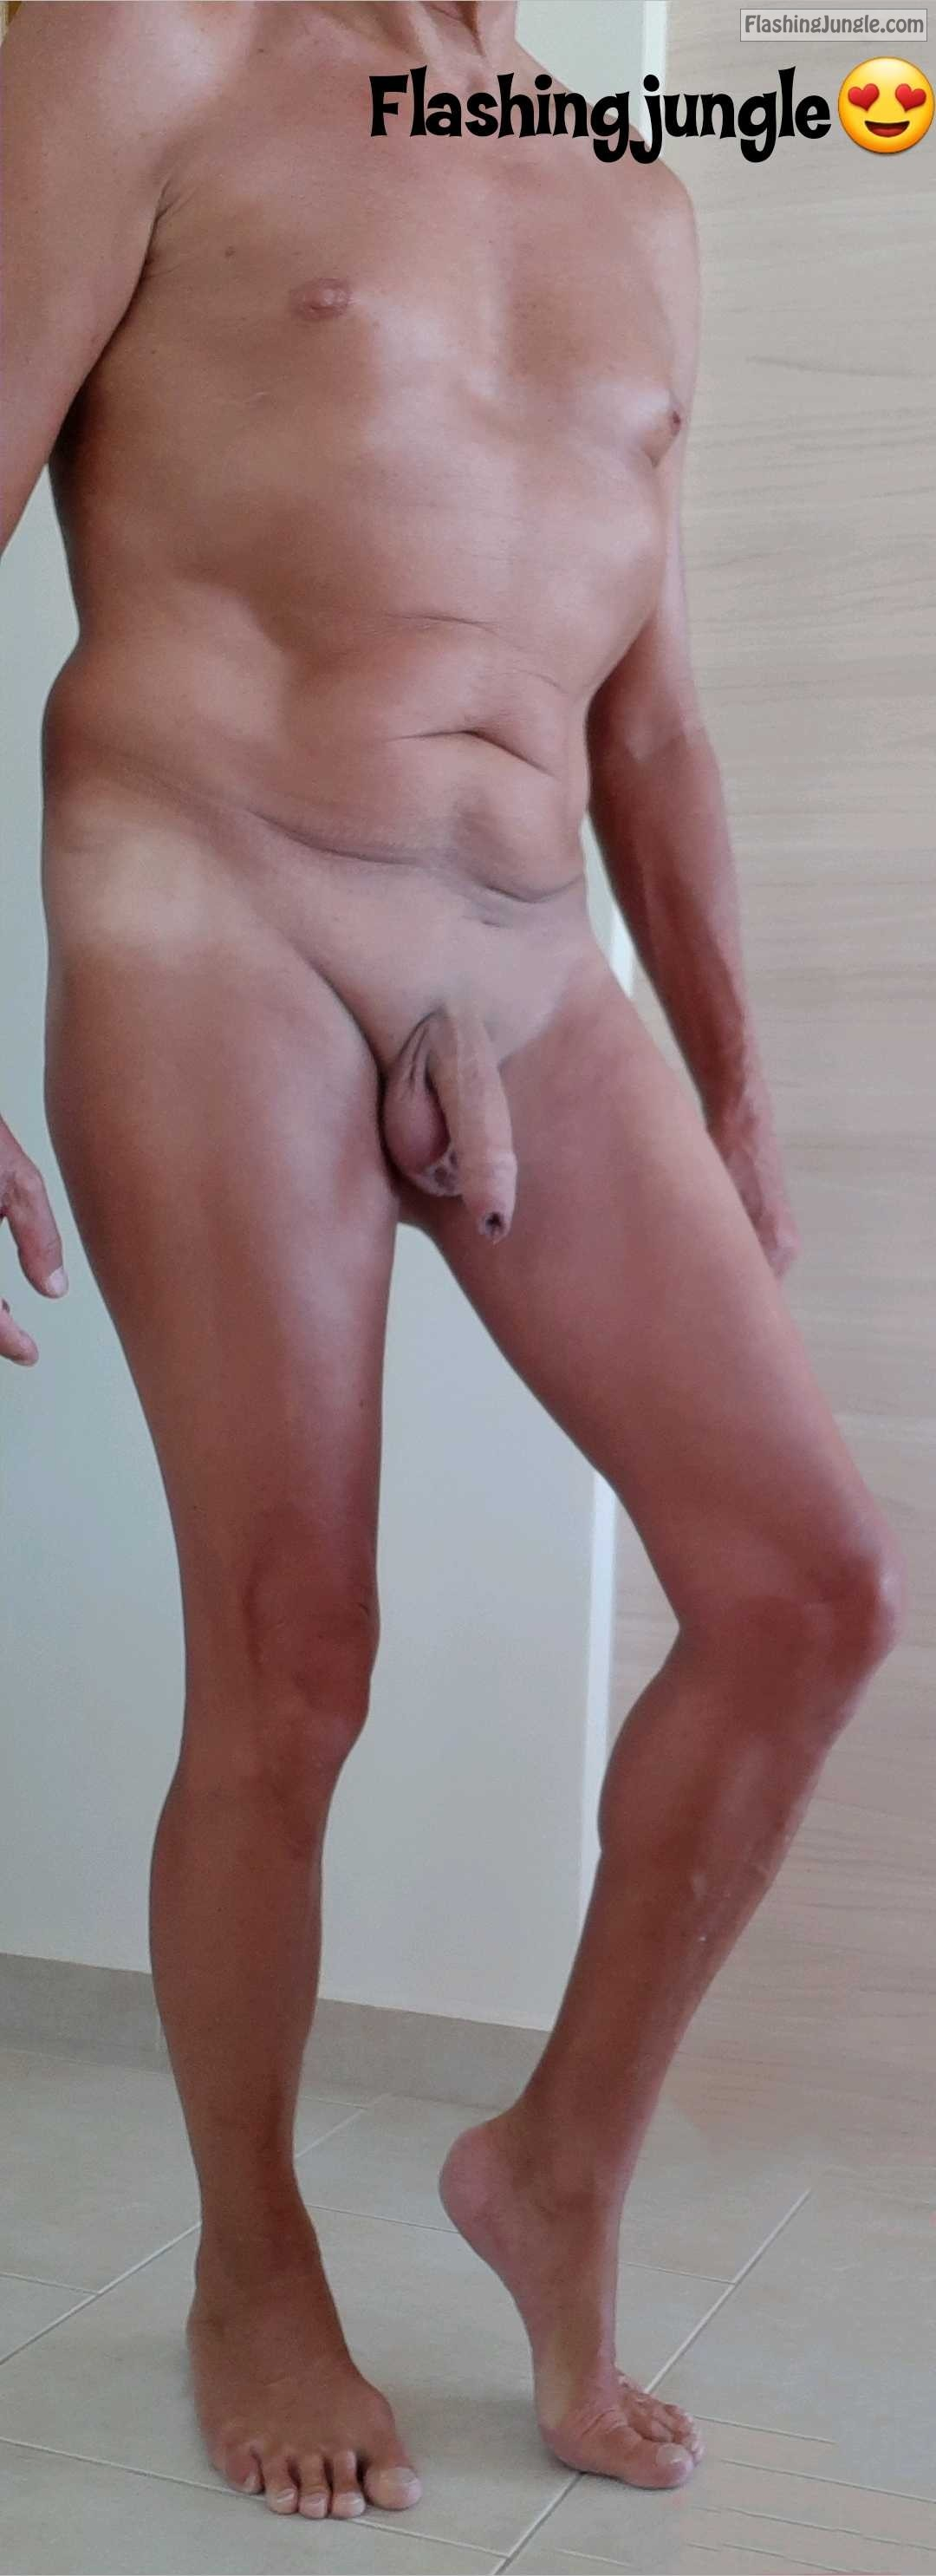 Happy flashing real nudity dick flash